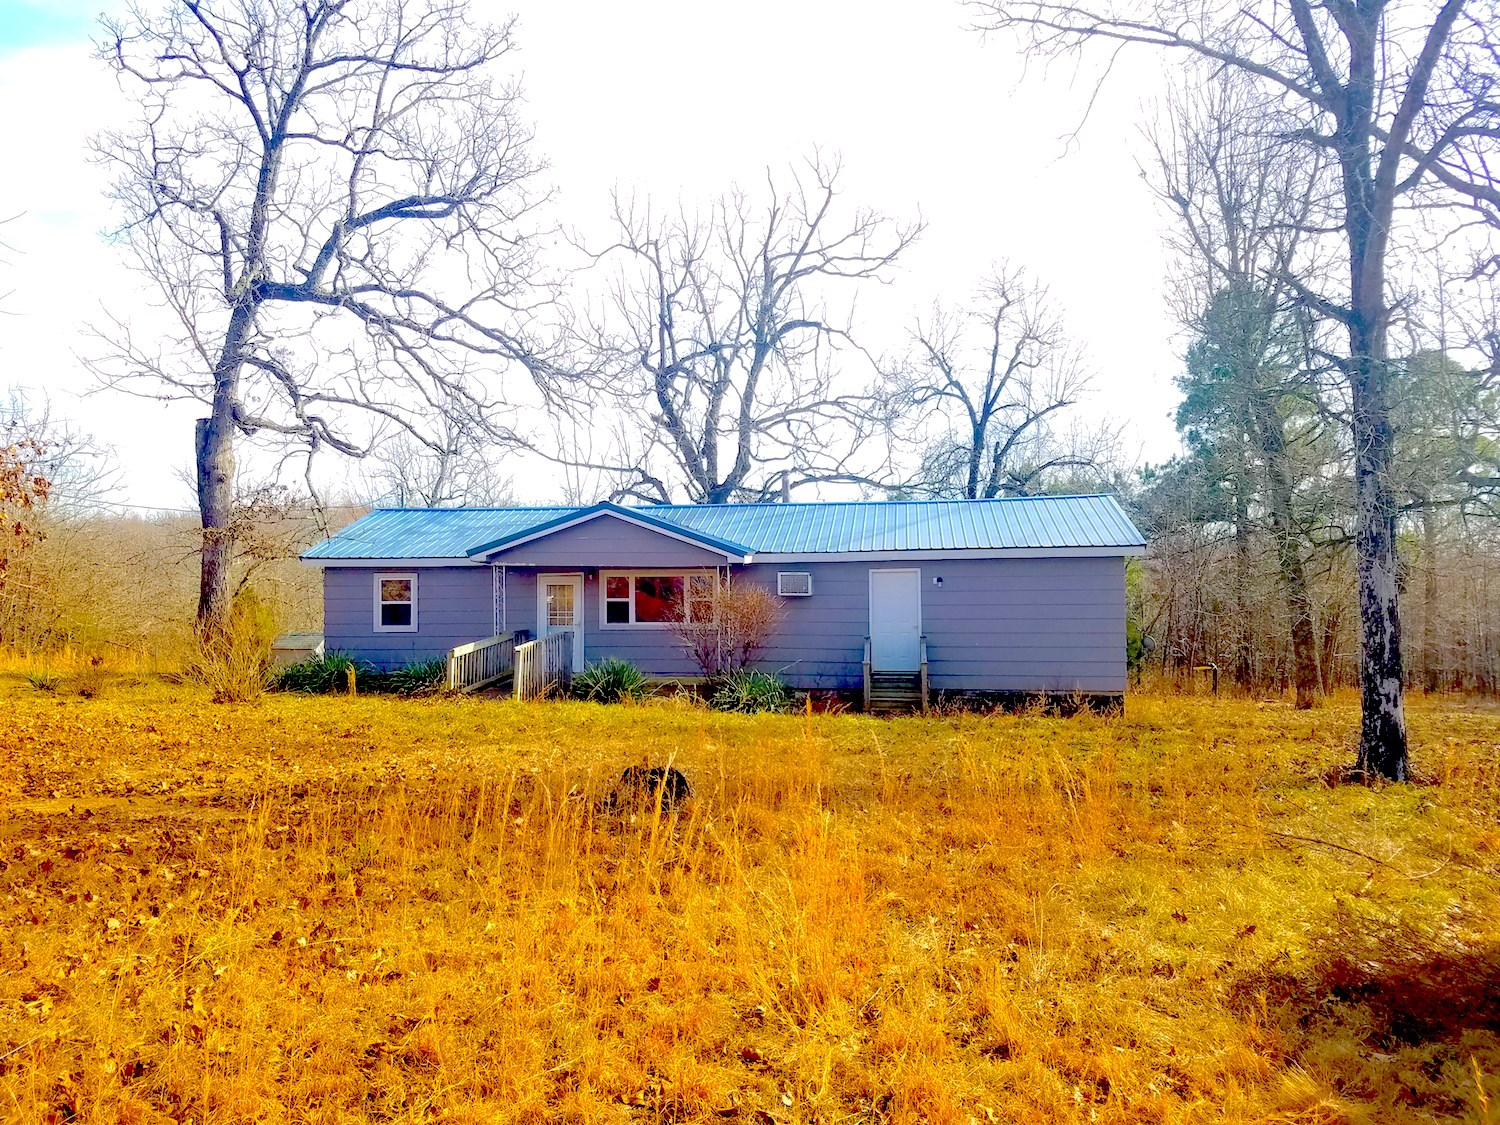 Secluded Home on 10 acres For Sale in Northern Arkansas